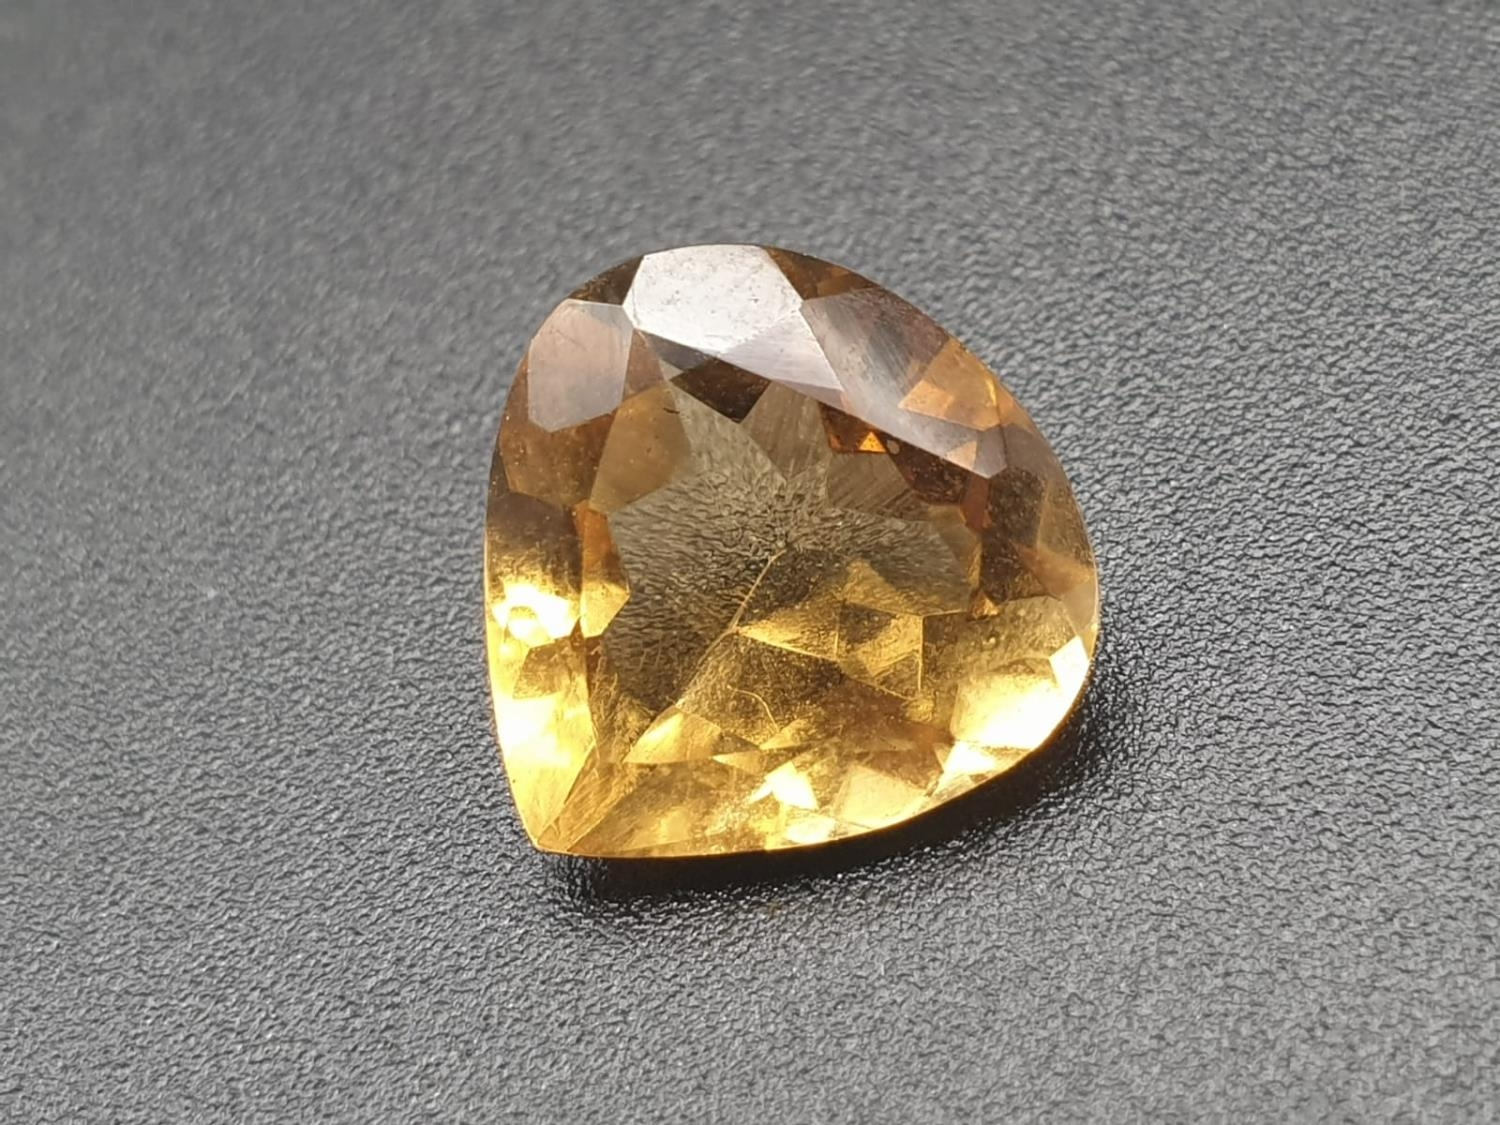 3.82 Cts Natural Citrine stone Pear shape. IDT certified